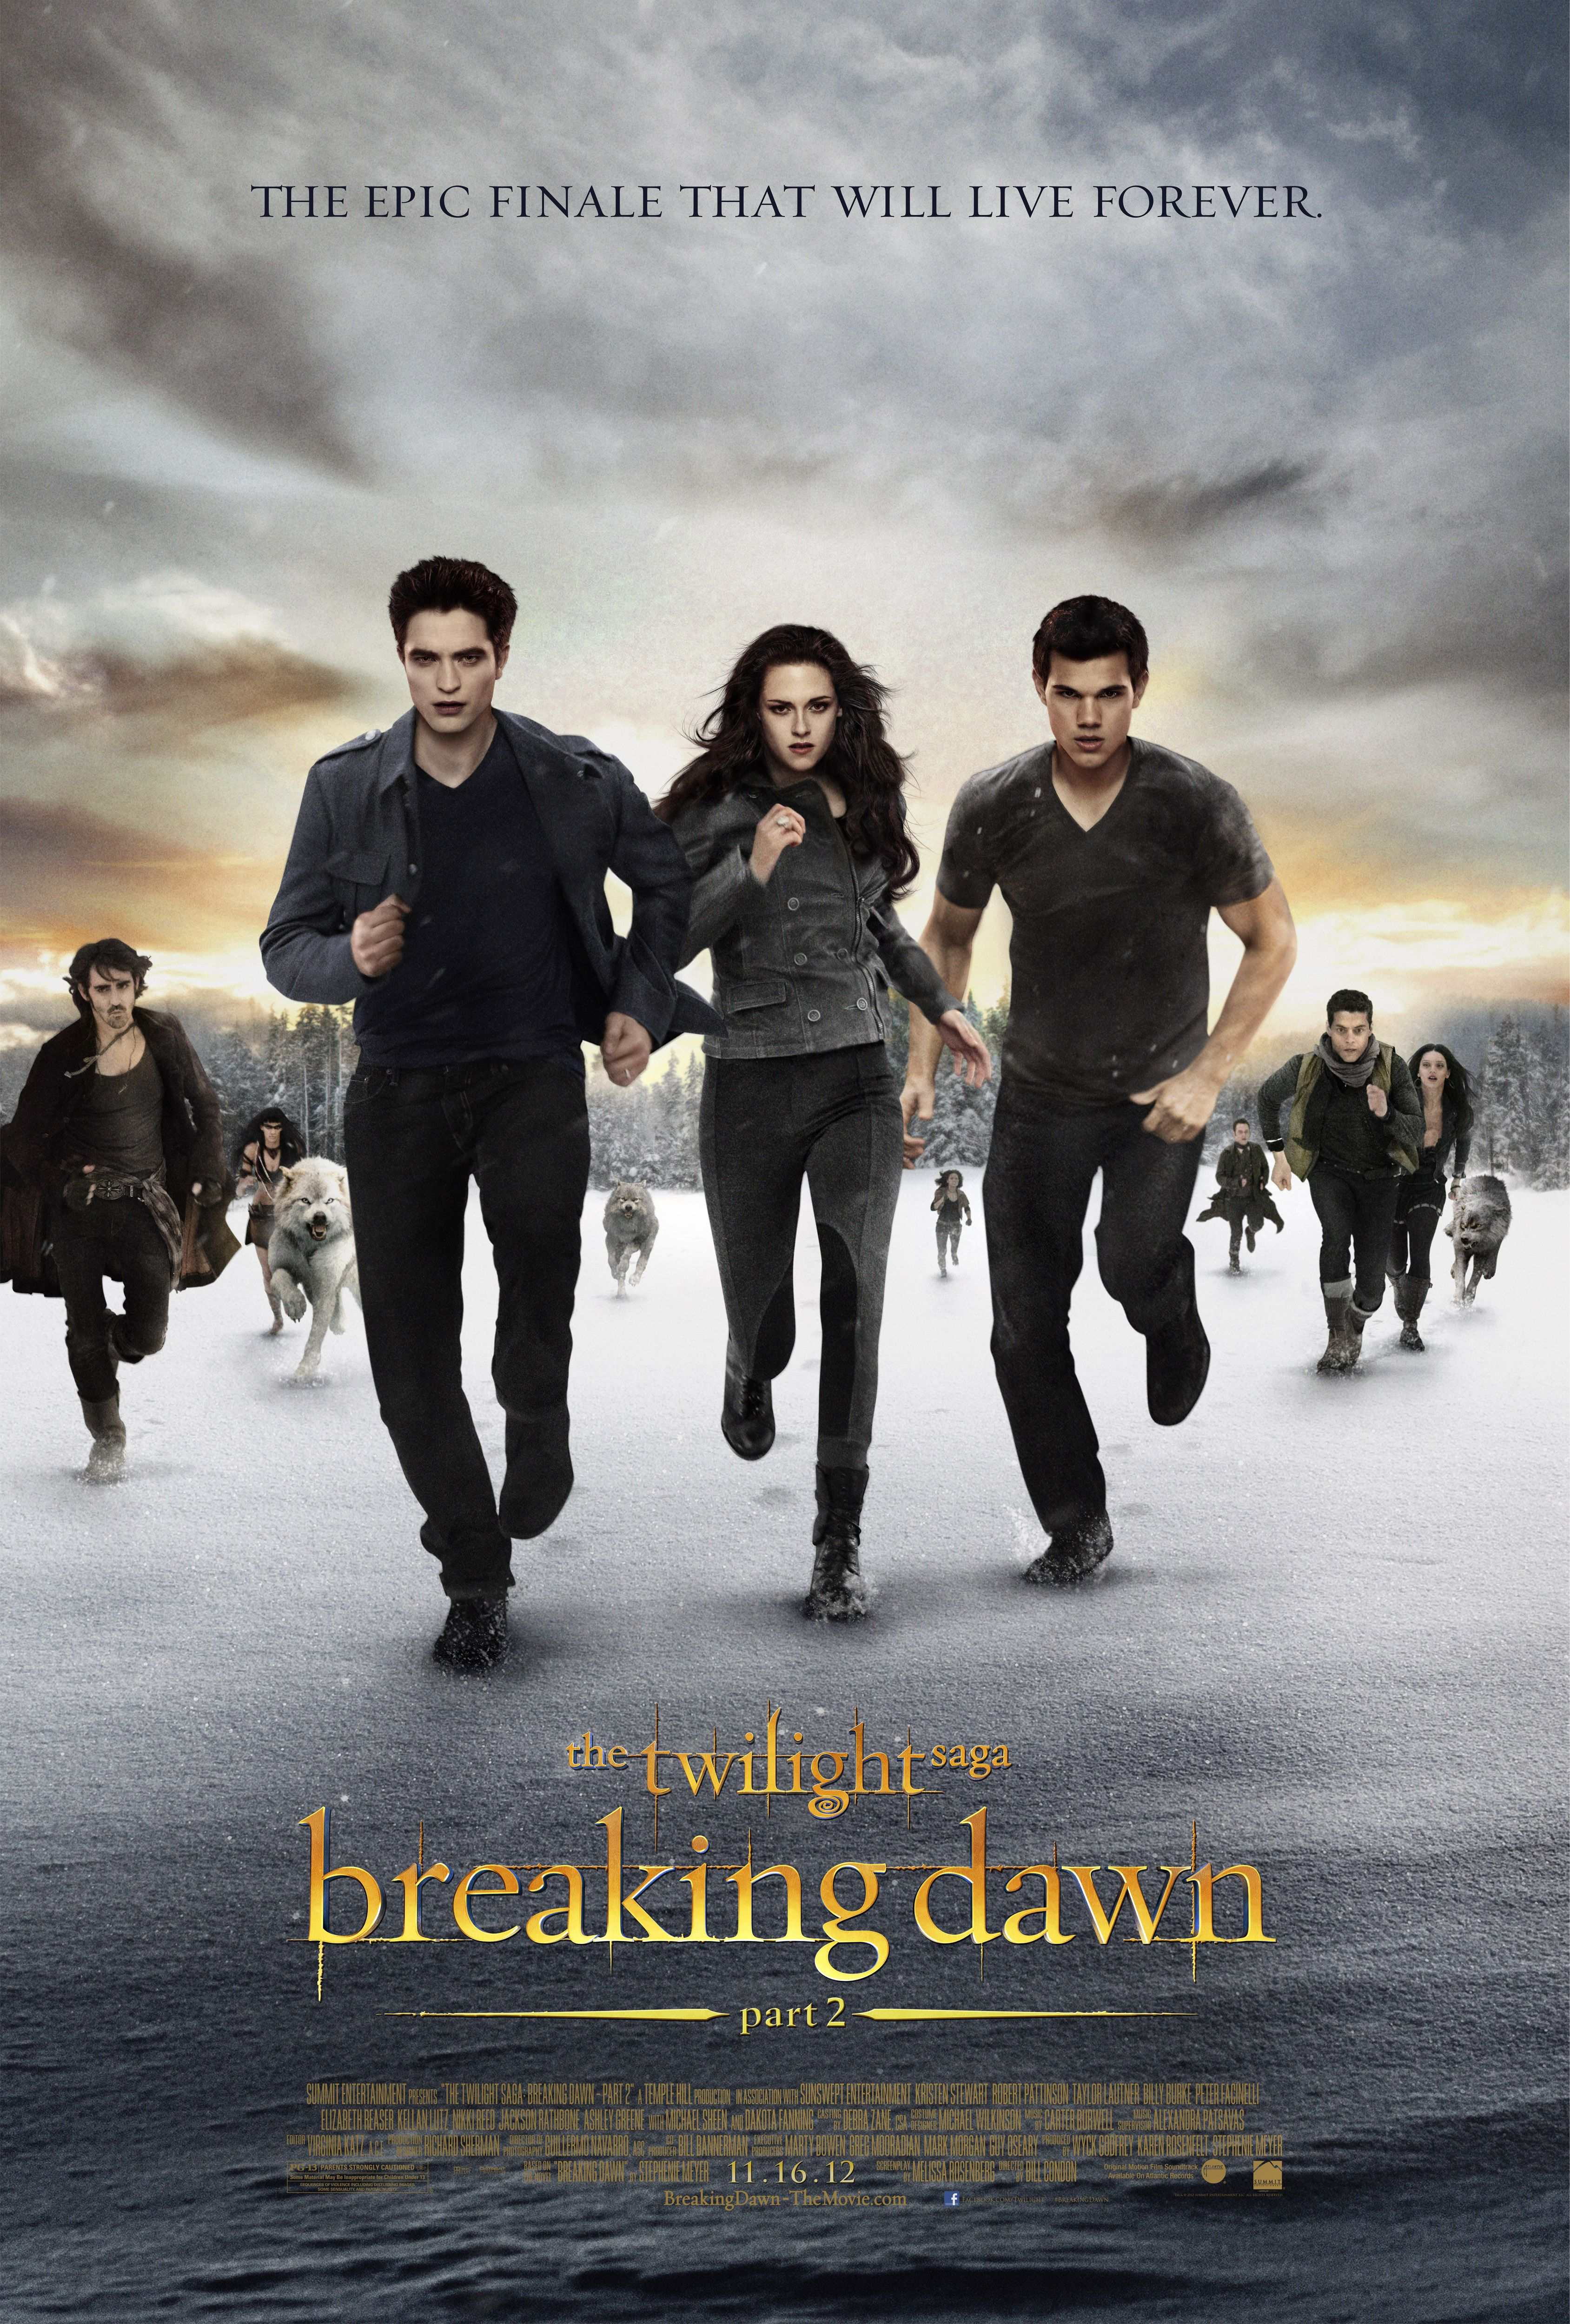 Vote now for Twilight as best adapted Movie Franchise! Voting ends soon!! Click for the link!